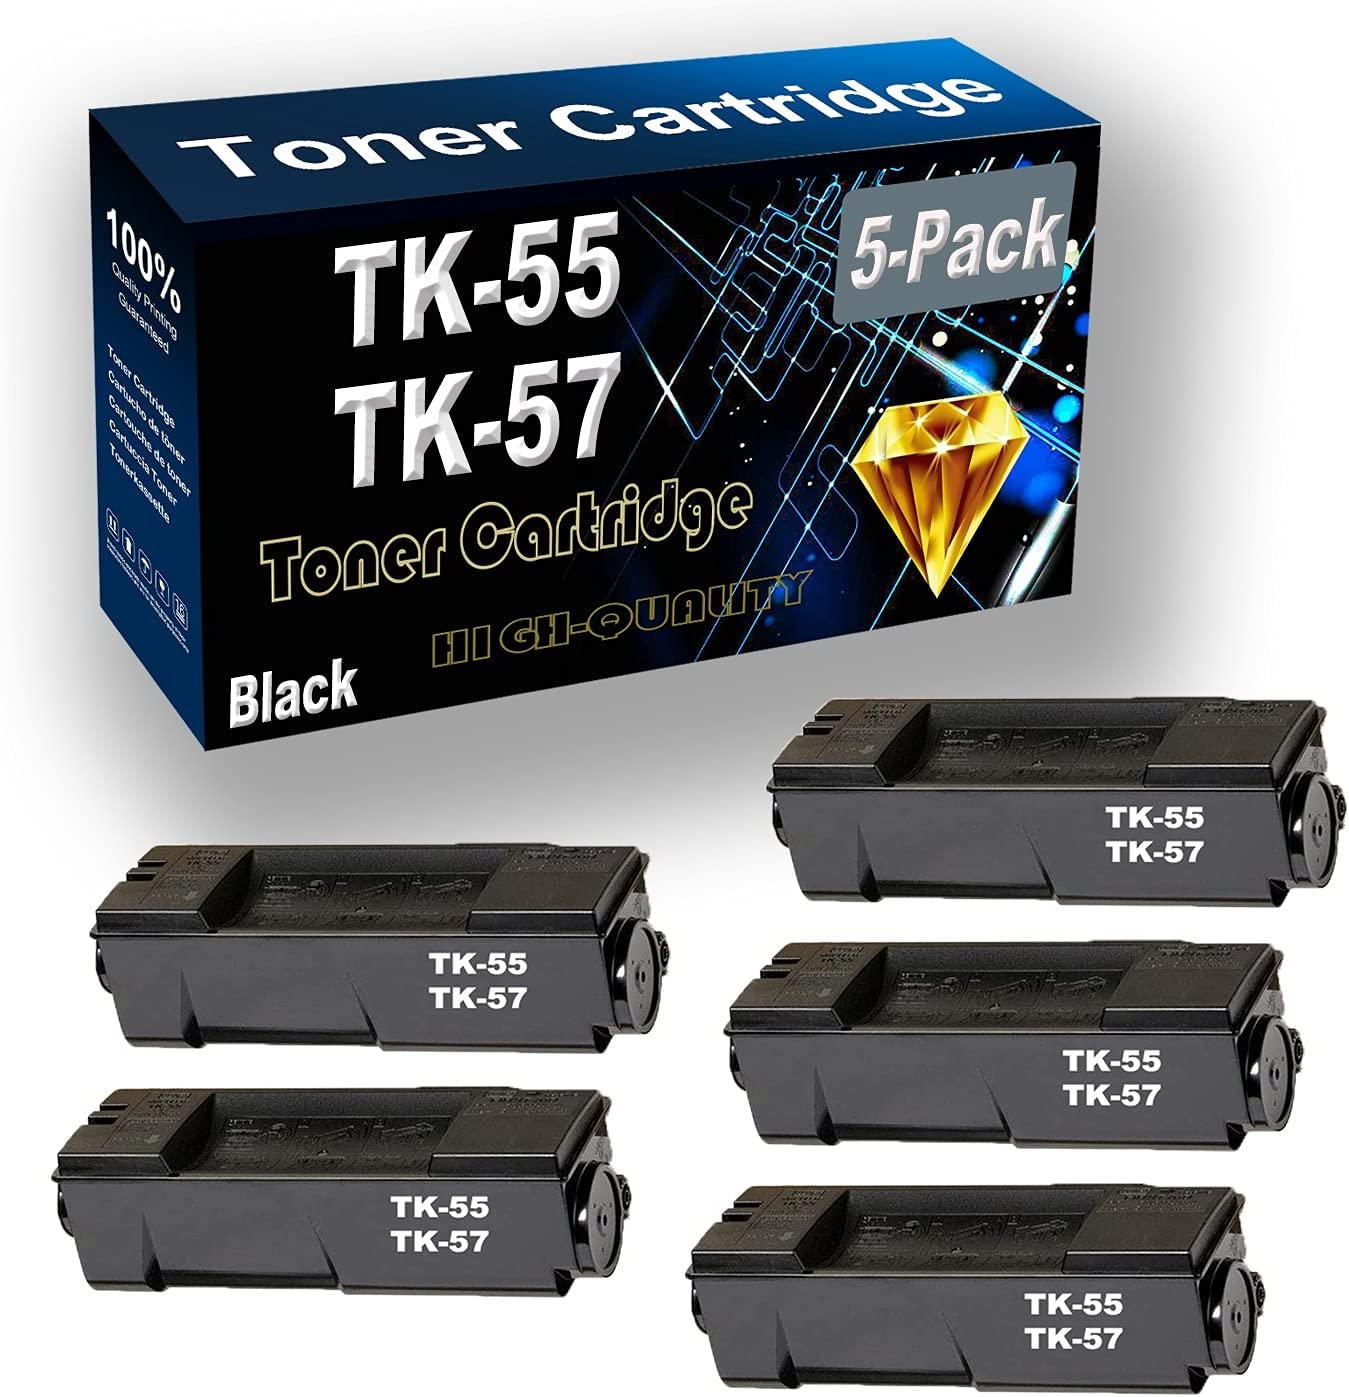 Remanufactured Toner Cartridge Replacement for Kyocera TK55 TK-55 TK57 TK-57 for Kyocera FS-1900 FS-1920 Printer (5-Pack Black)